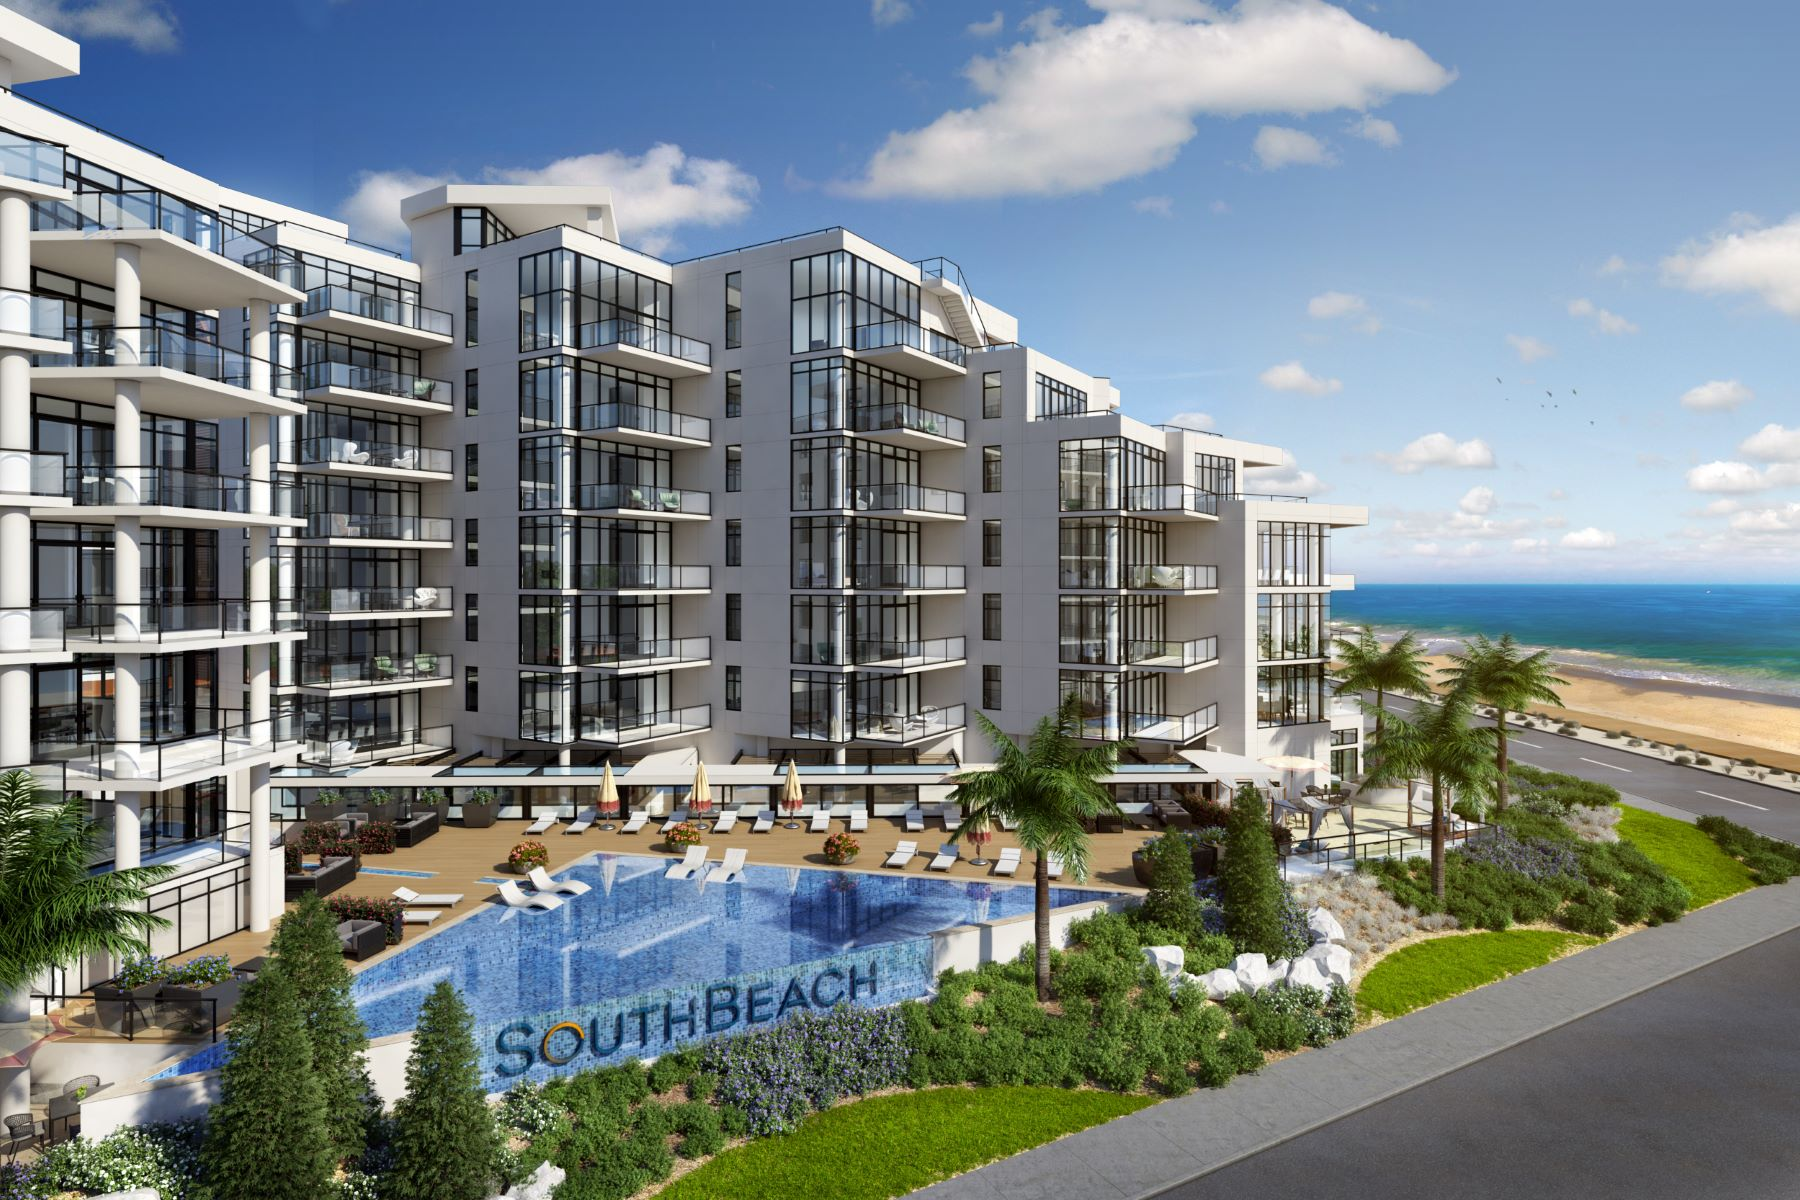 Condominiums للـ Sale في South Beach at Long Branch 350 Ocean Avenue 801, Long Branch, New Jersey 07740 United States